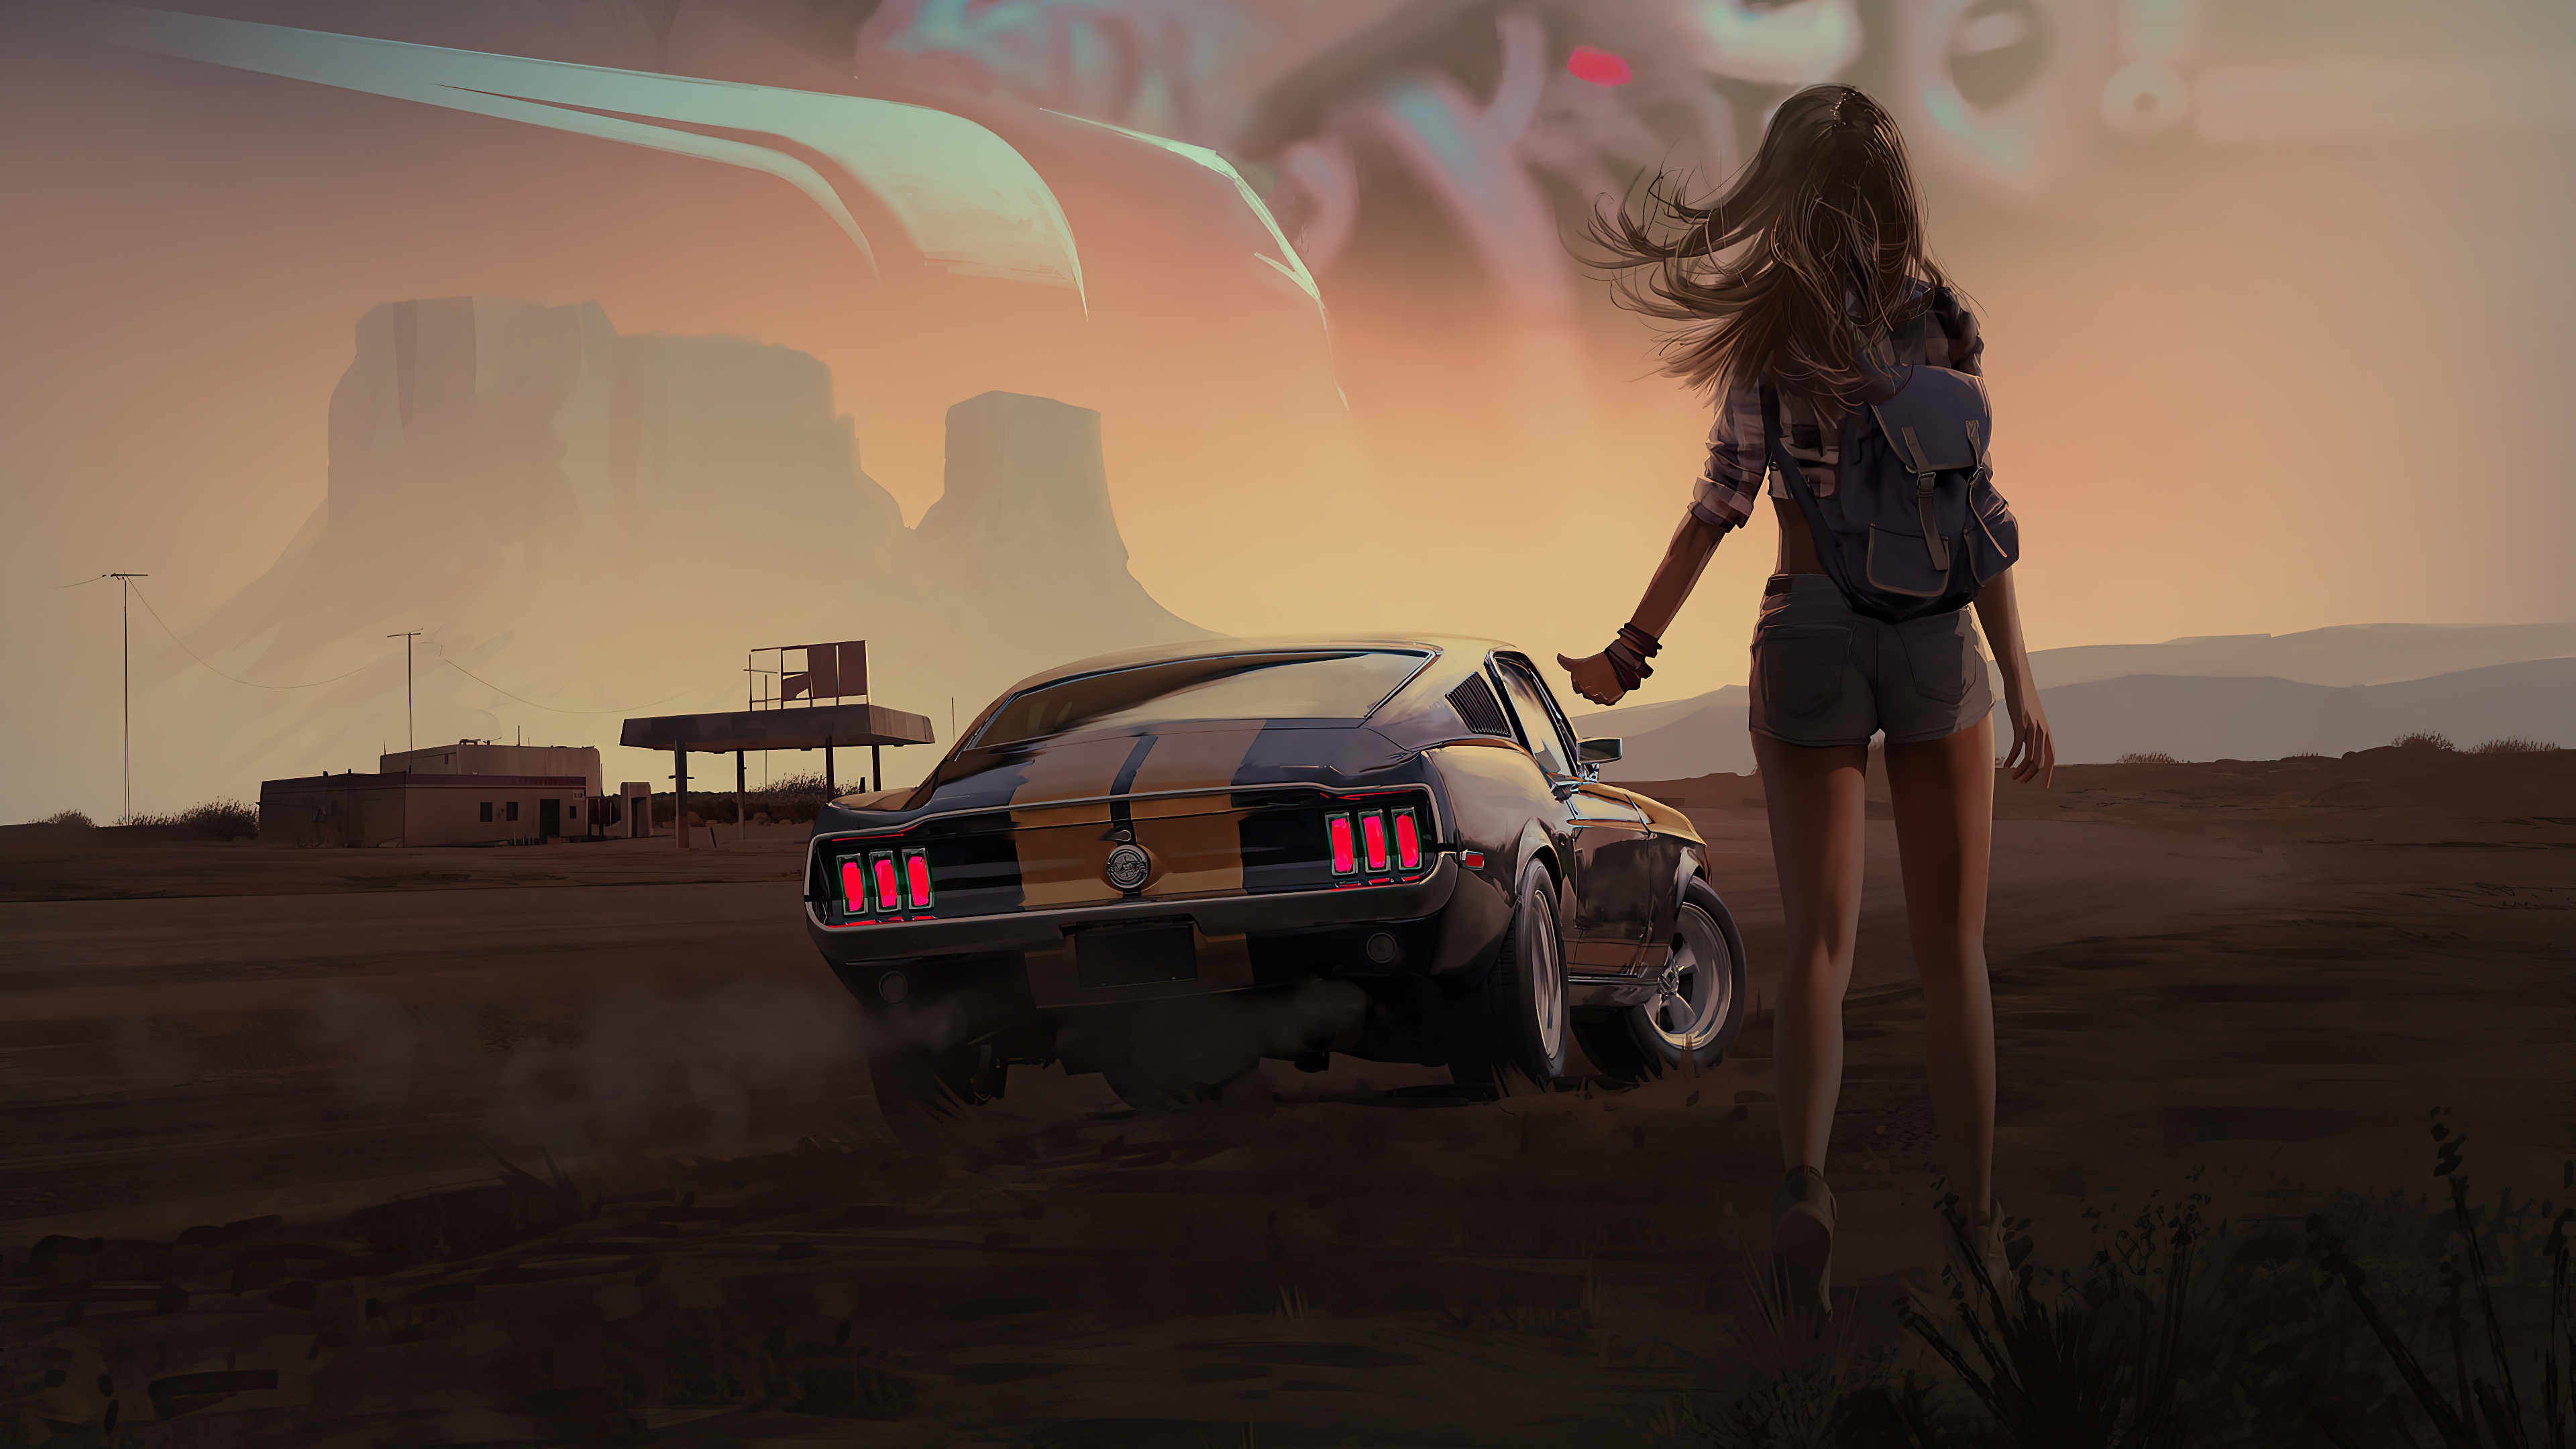 girl with mustang 4k 1602436663 - Girl With Mustang 4k - Girl With Mustang 4k wallpapers